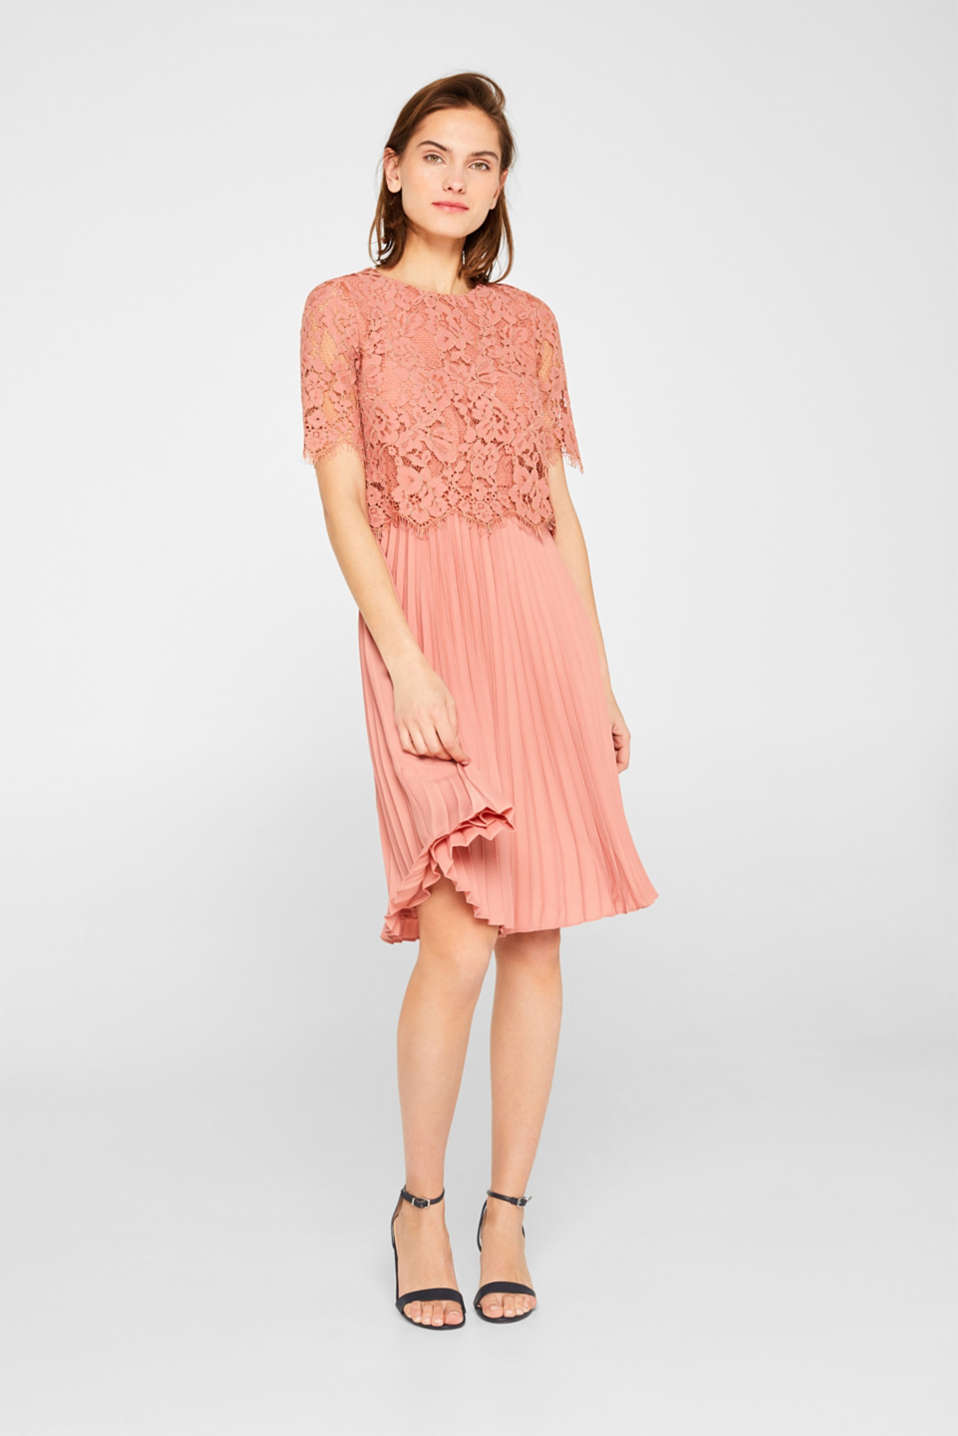 Layered dress with a lace top and pleated skirt, SALMON, detail image number 1